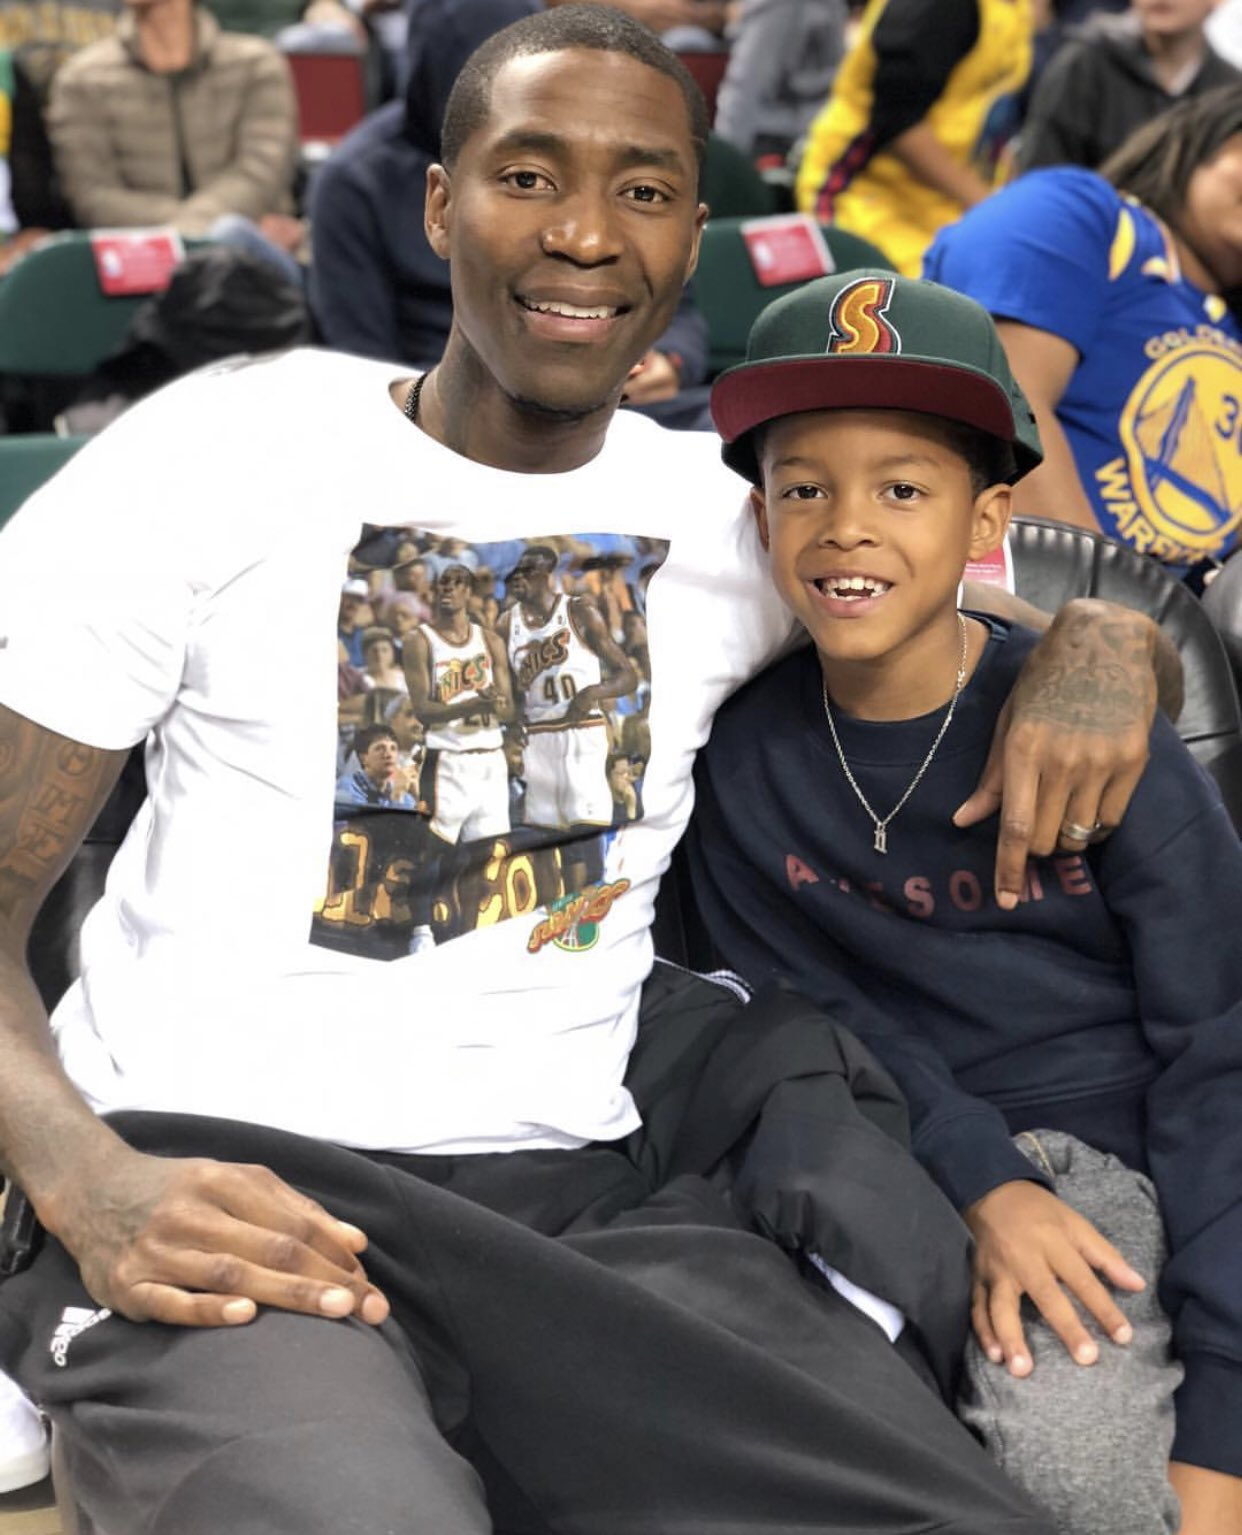 .@JCrossover's shirt. ��  (�� @NBA) https://t.co/F9Id7shlSr